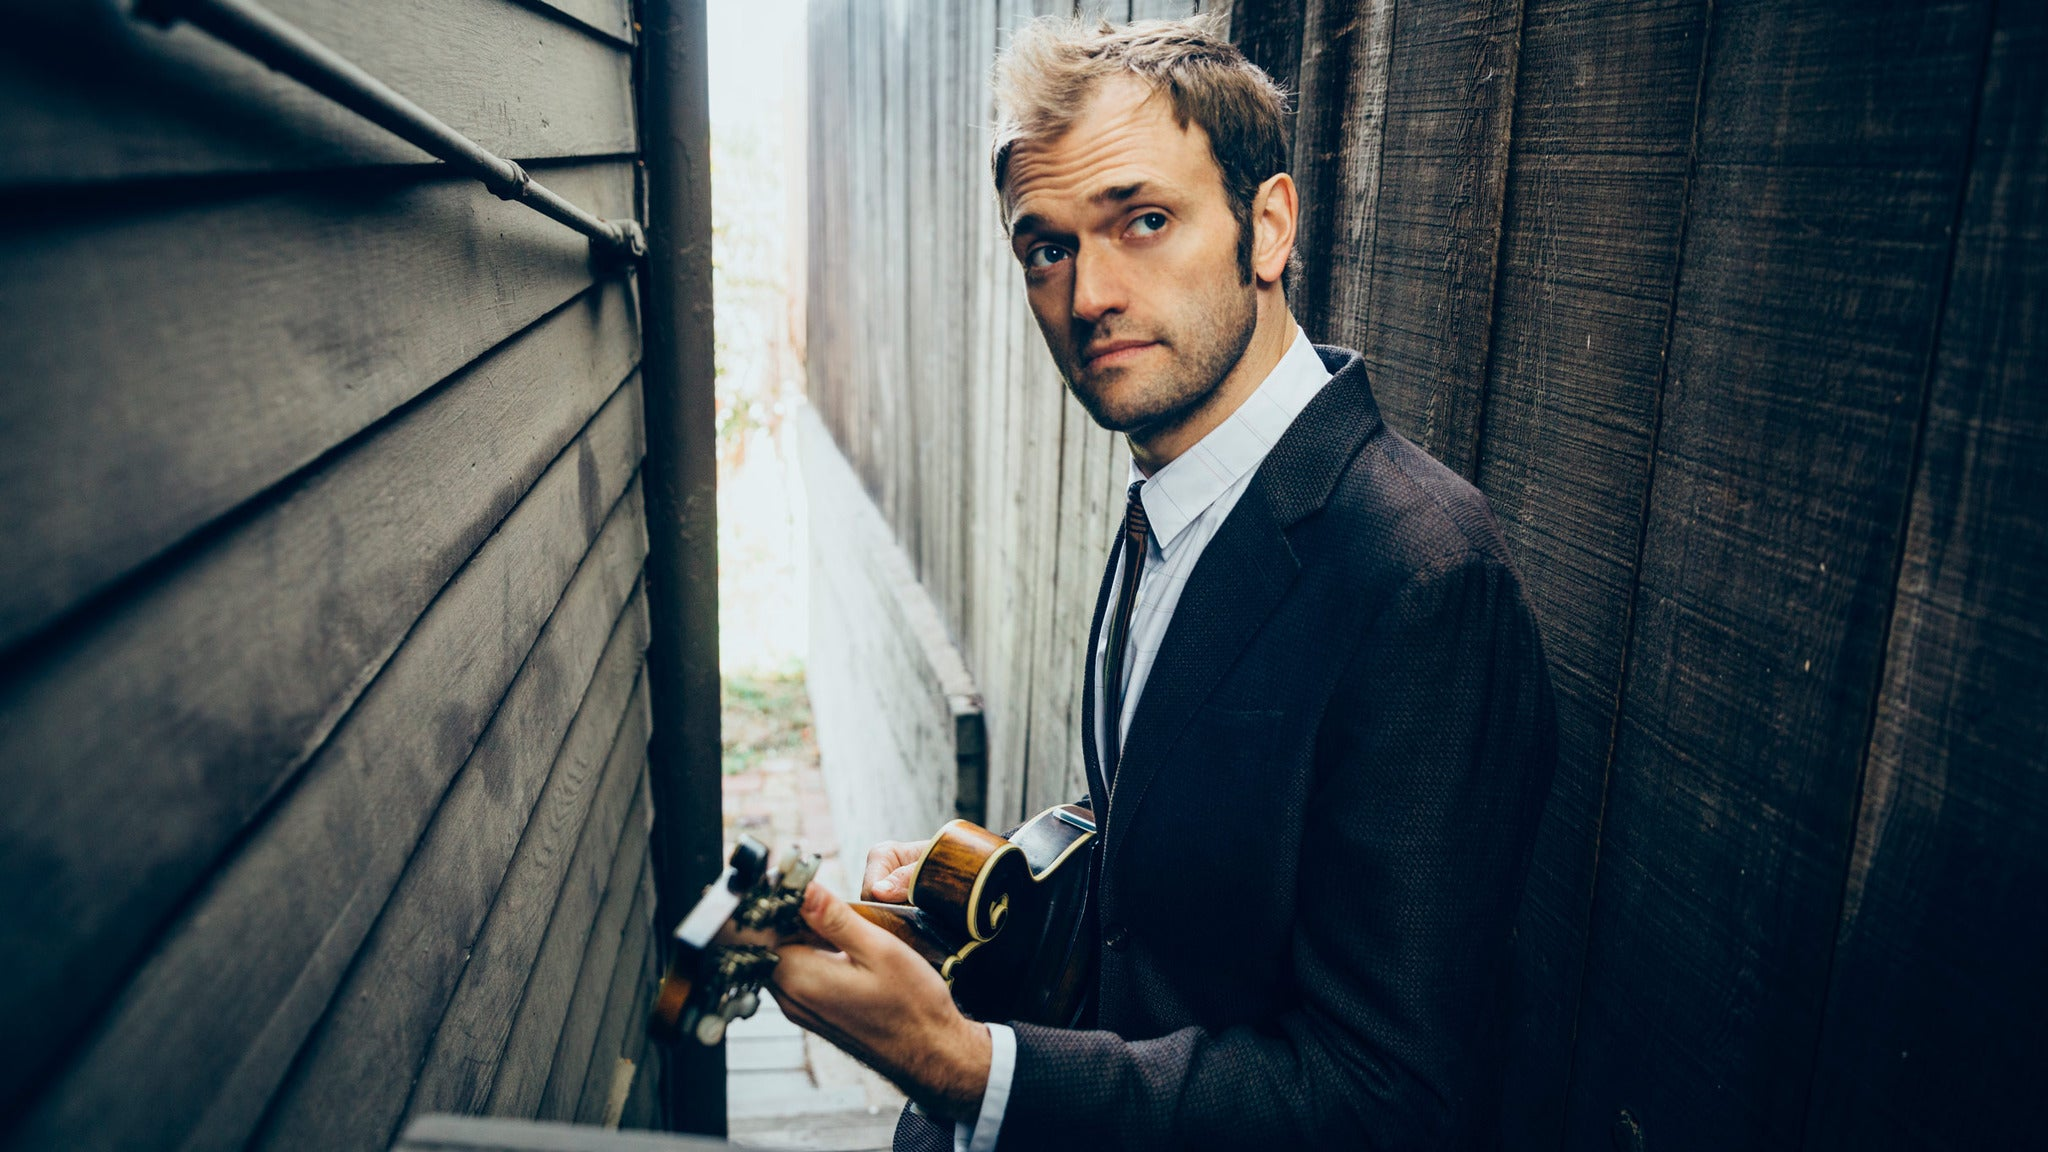 Chris Thile at Kennedy Center - Concert Hall - Washington, DC 20566